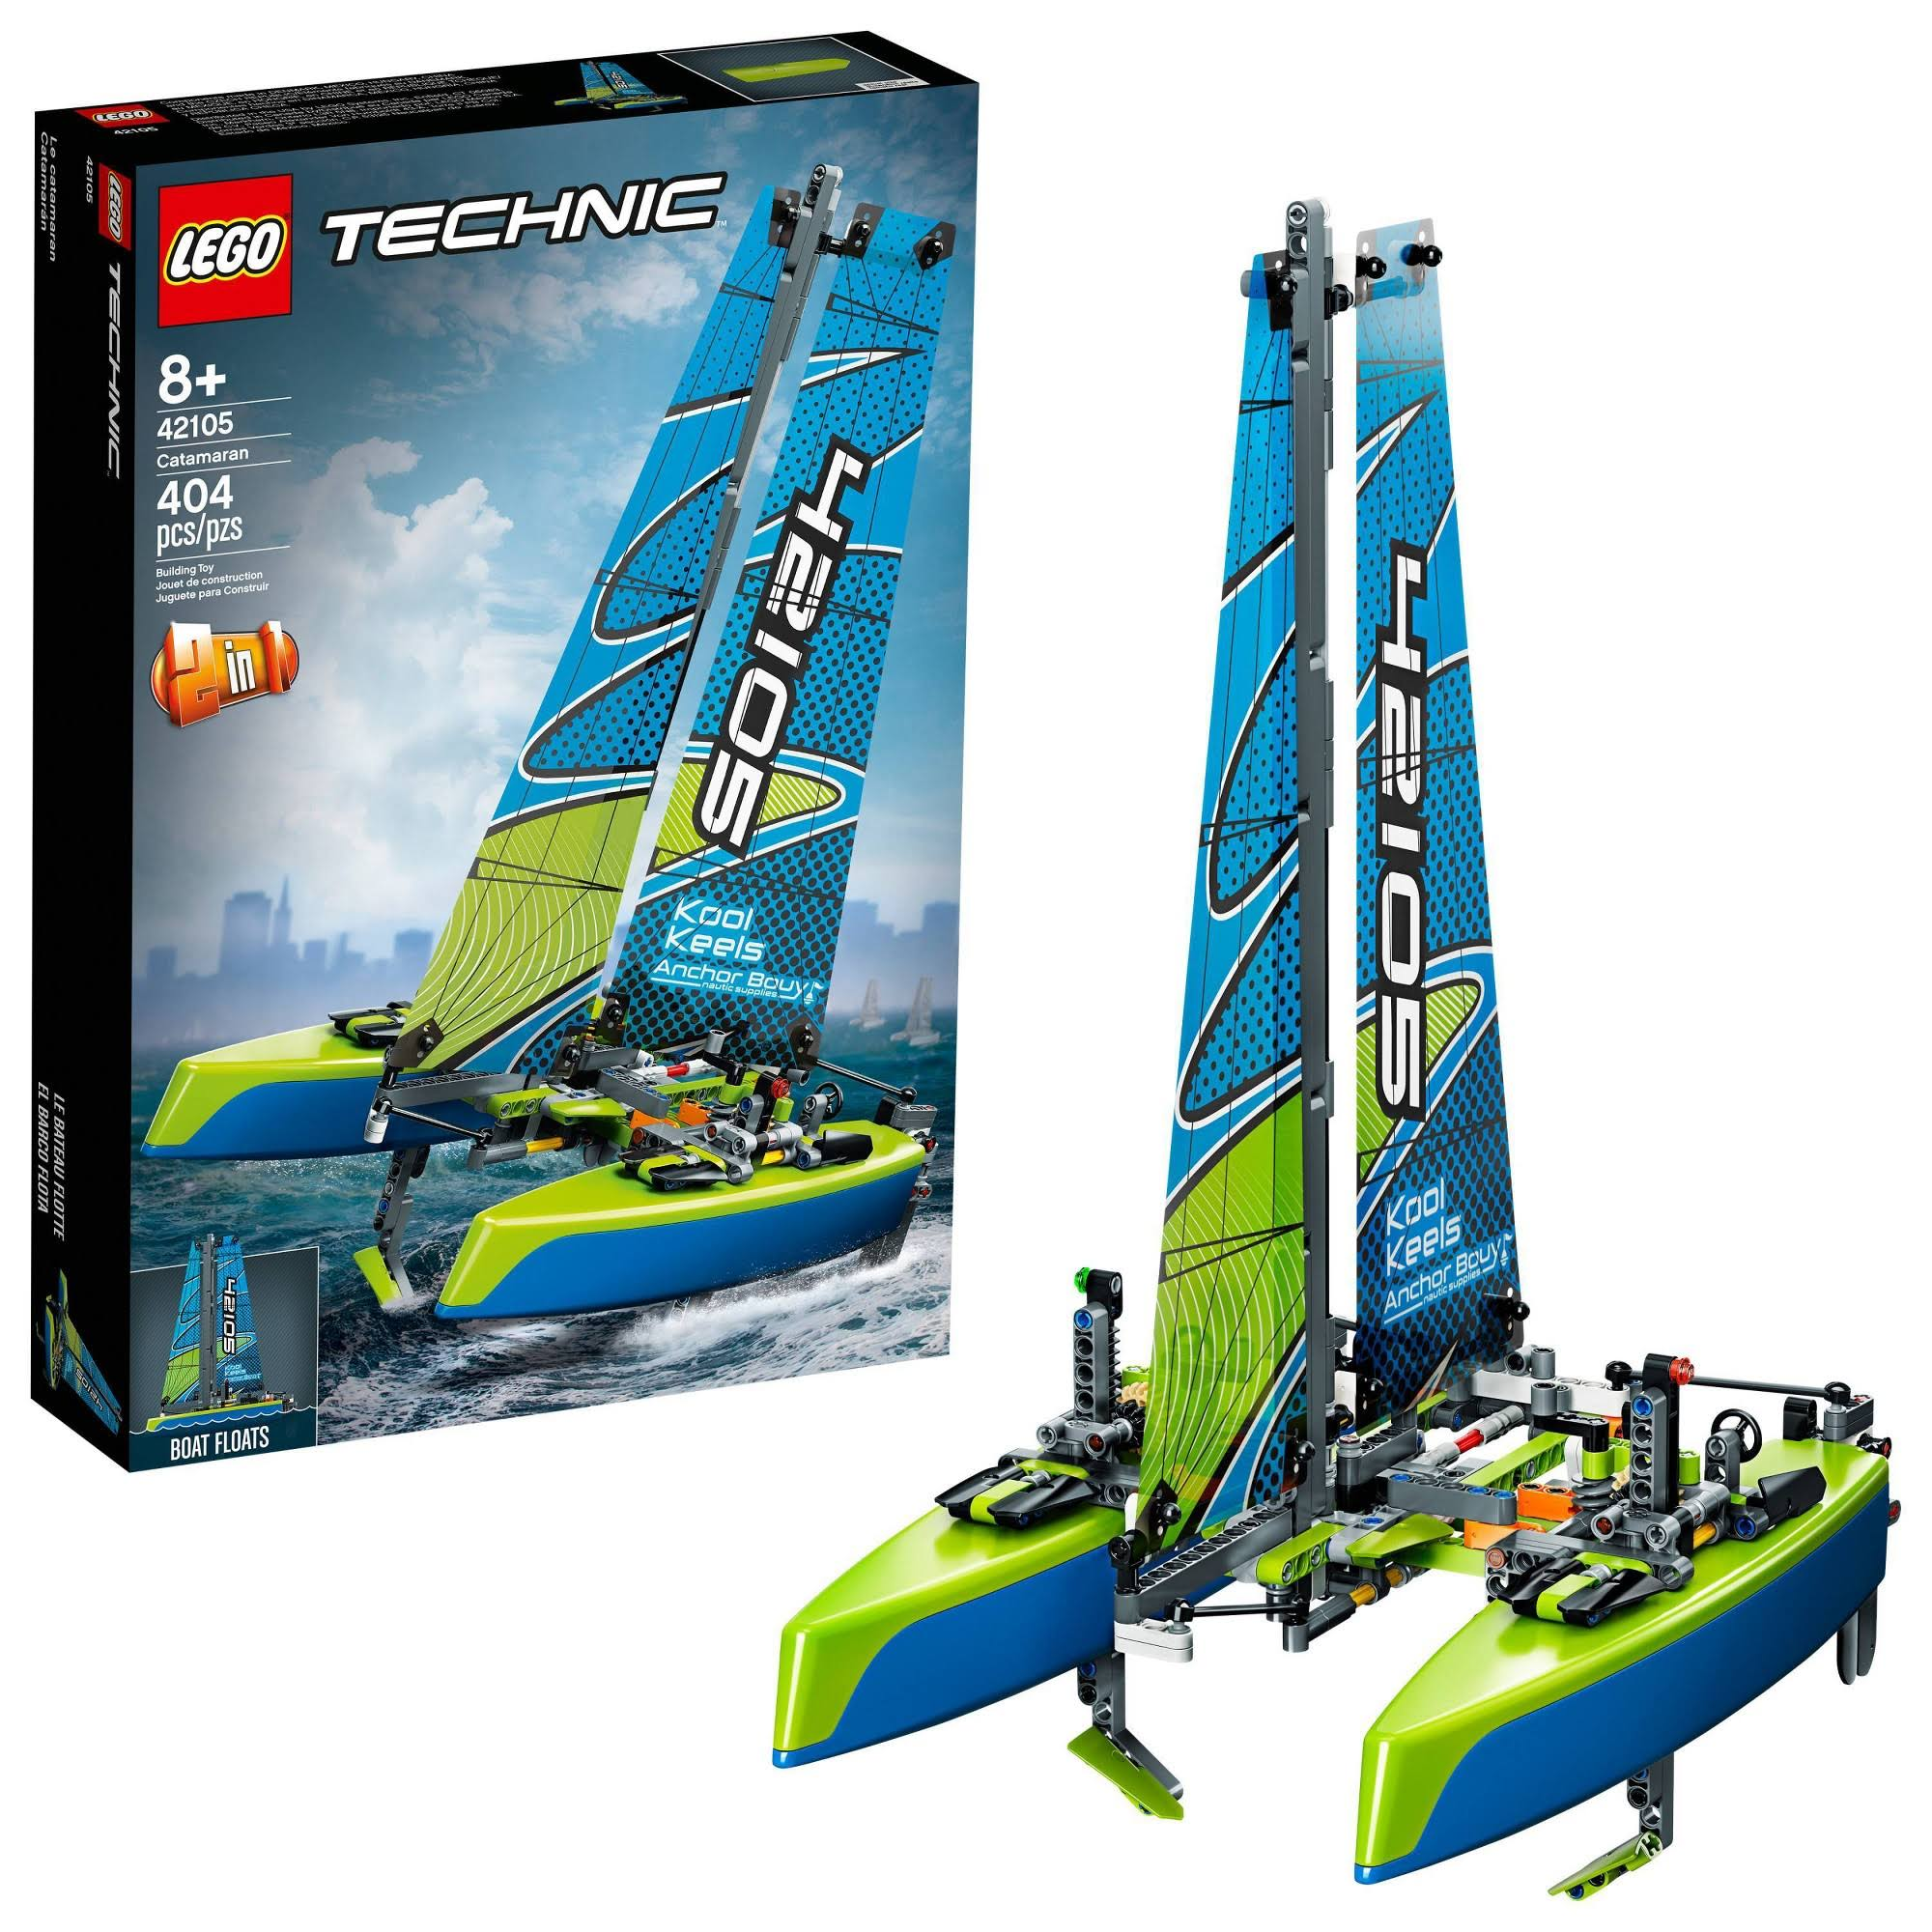 Lego Technic - Catamaran 42105